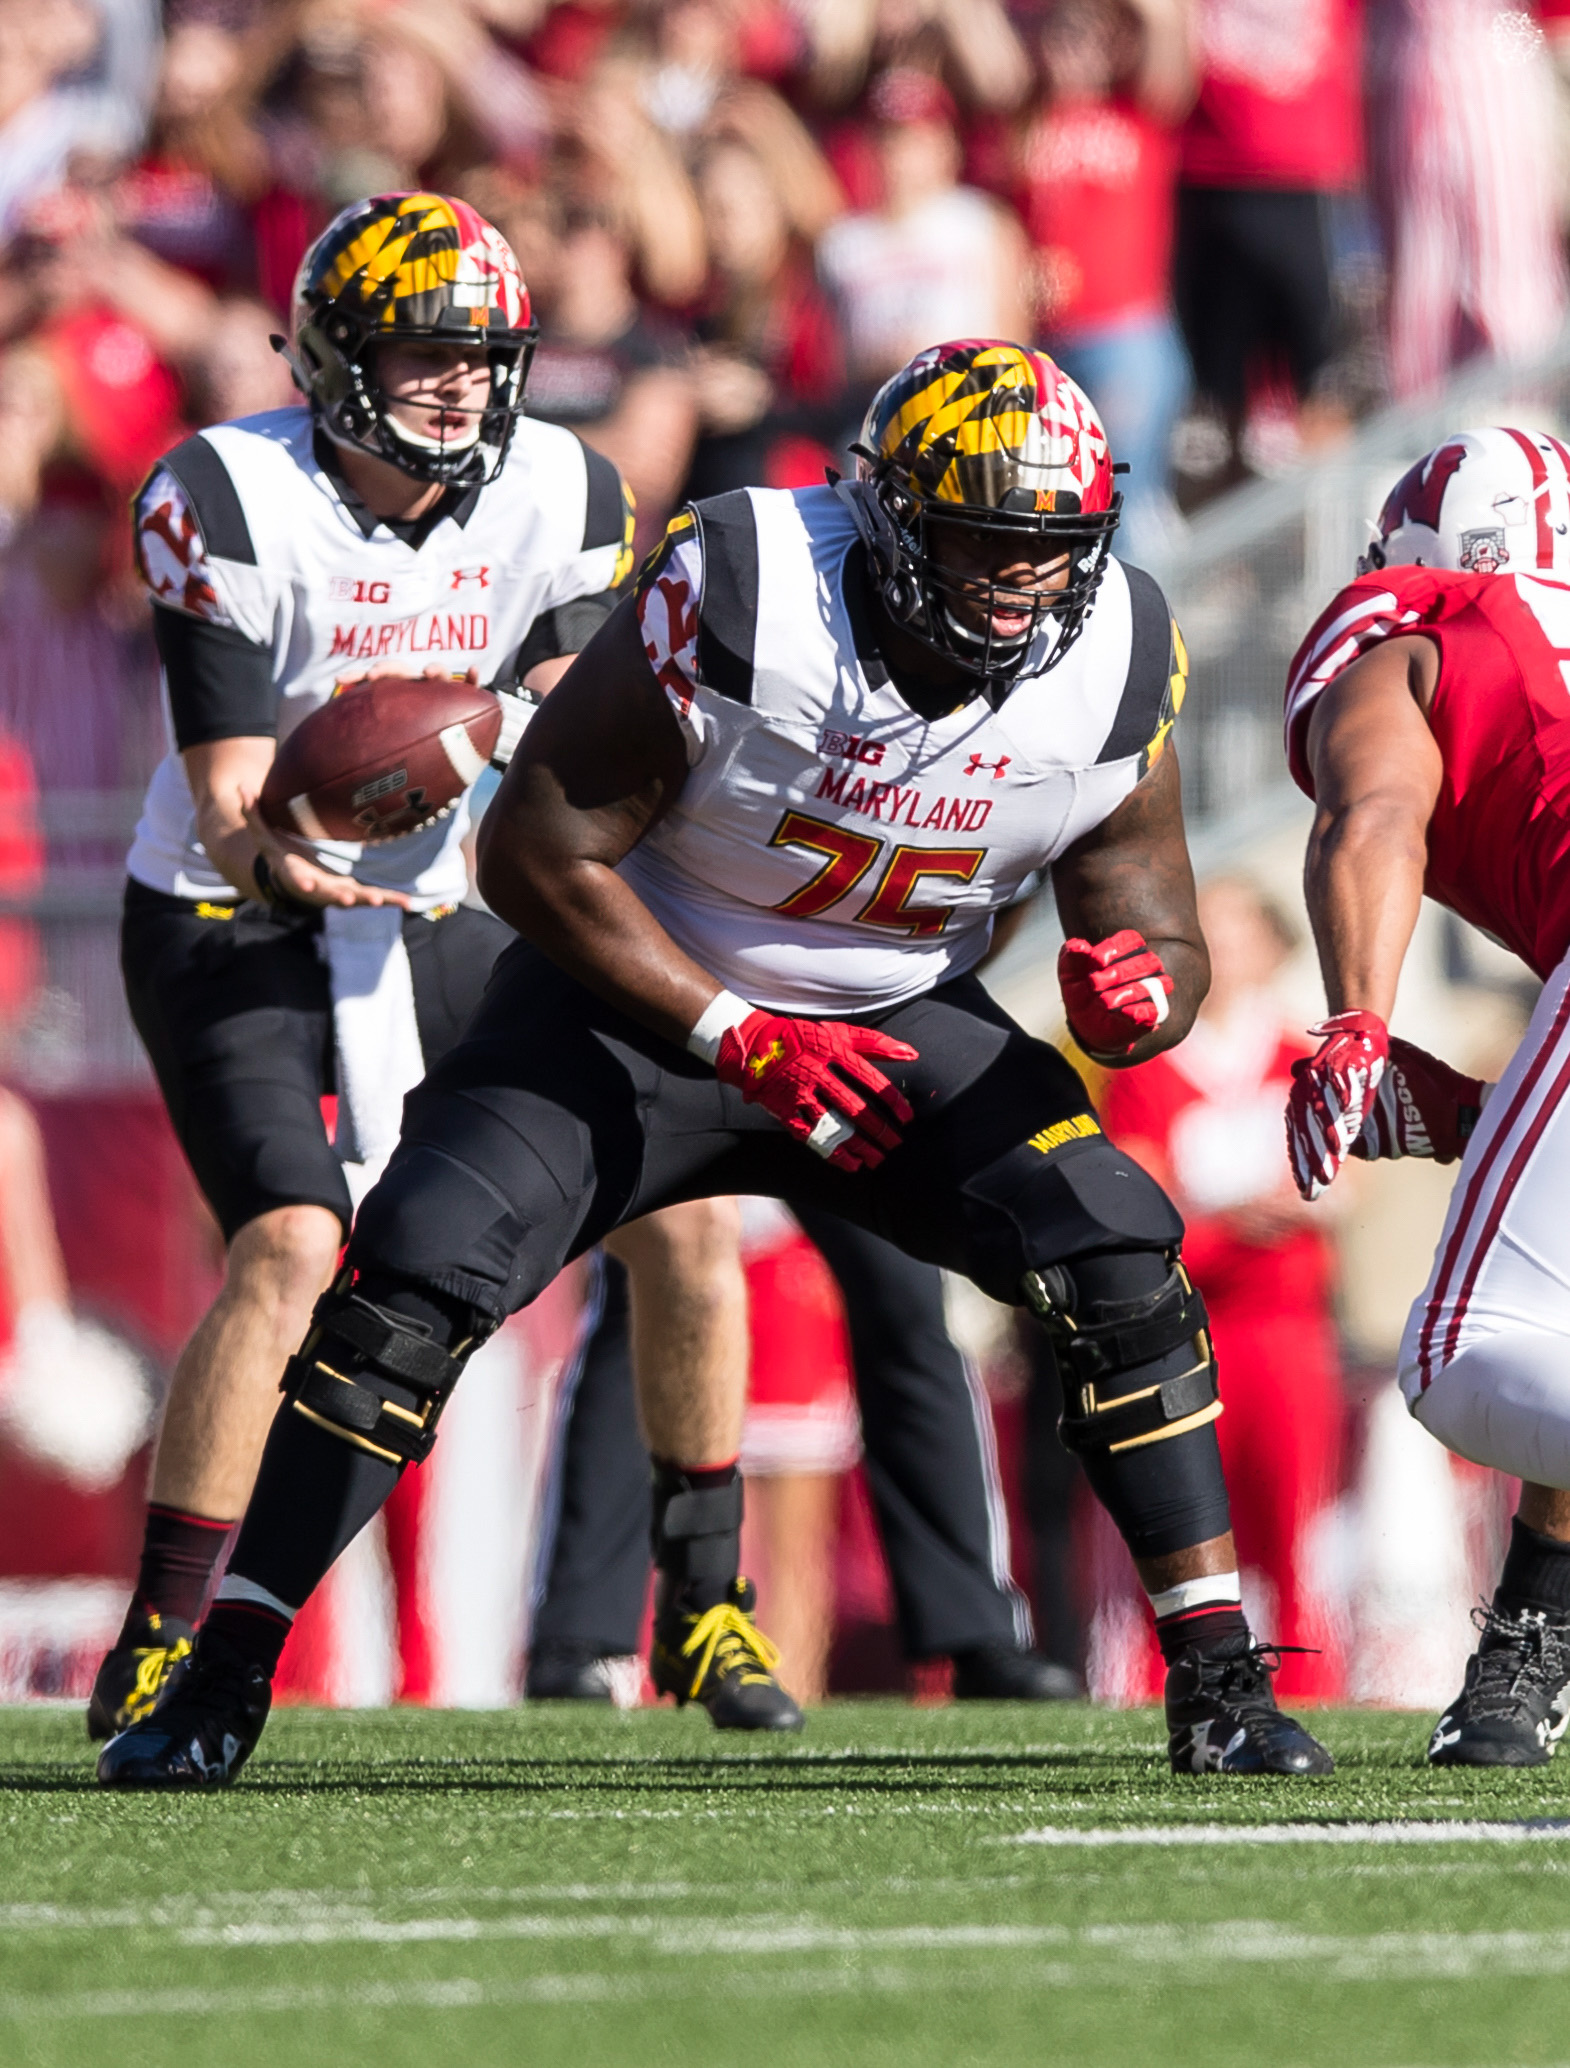 NCAA Football: Maryland at Wisconsin